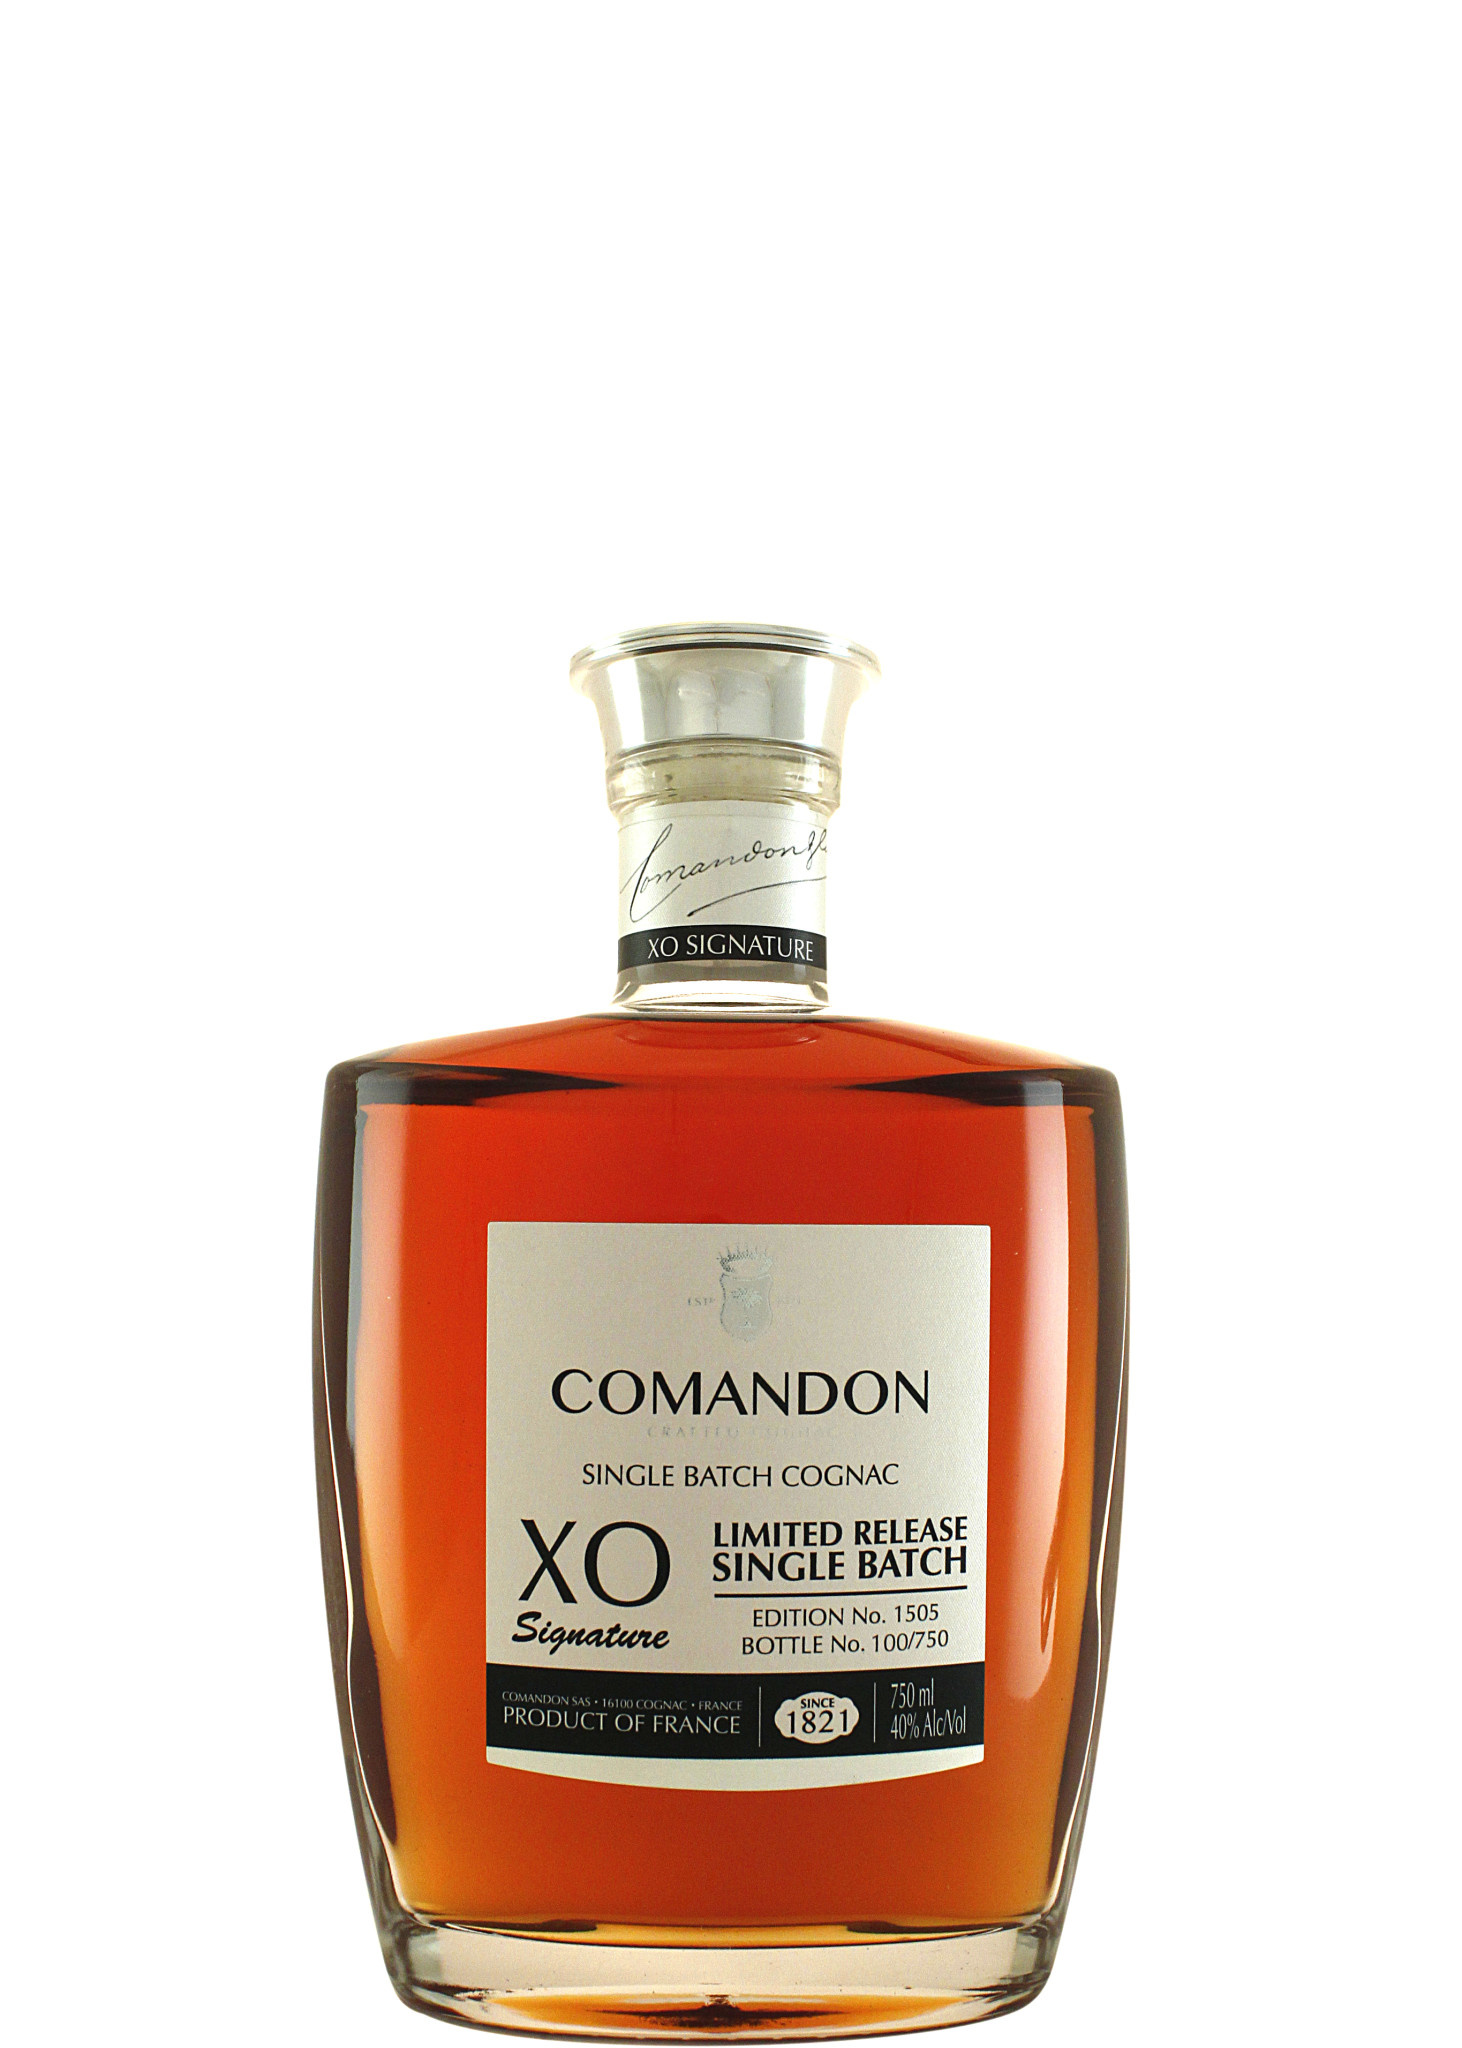 Comandon Cognac XO Signature Limited Release Single Batch